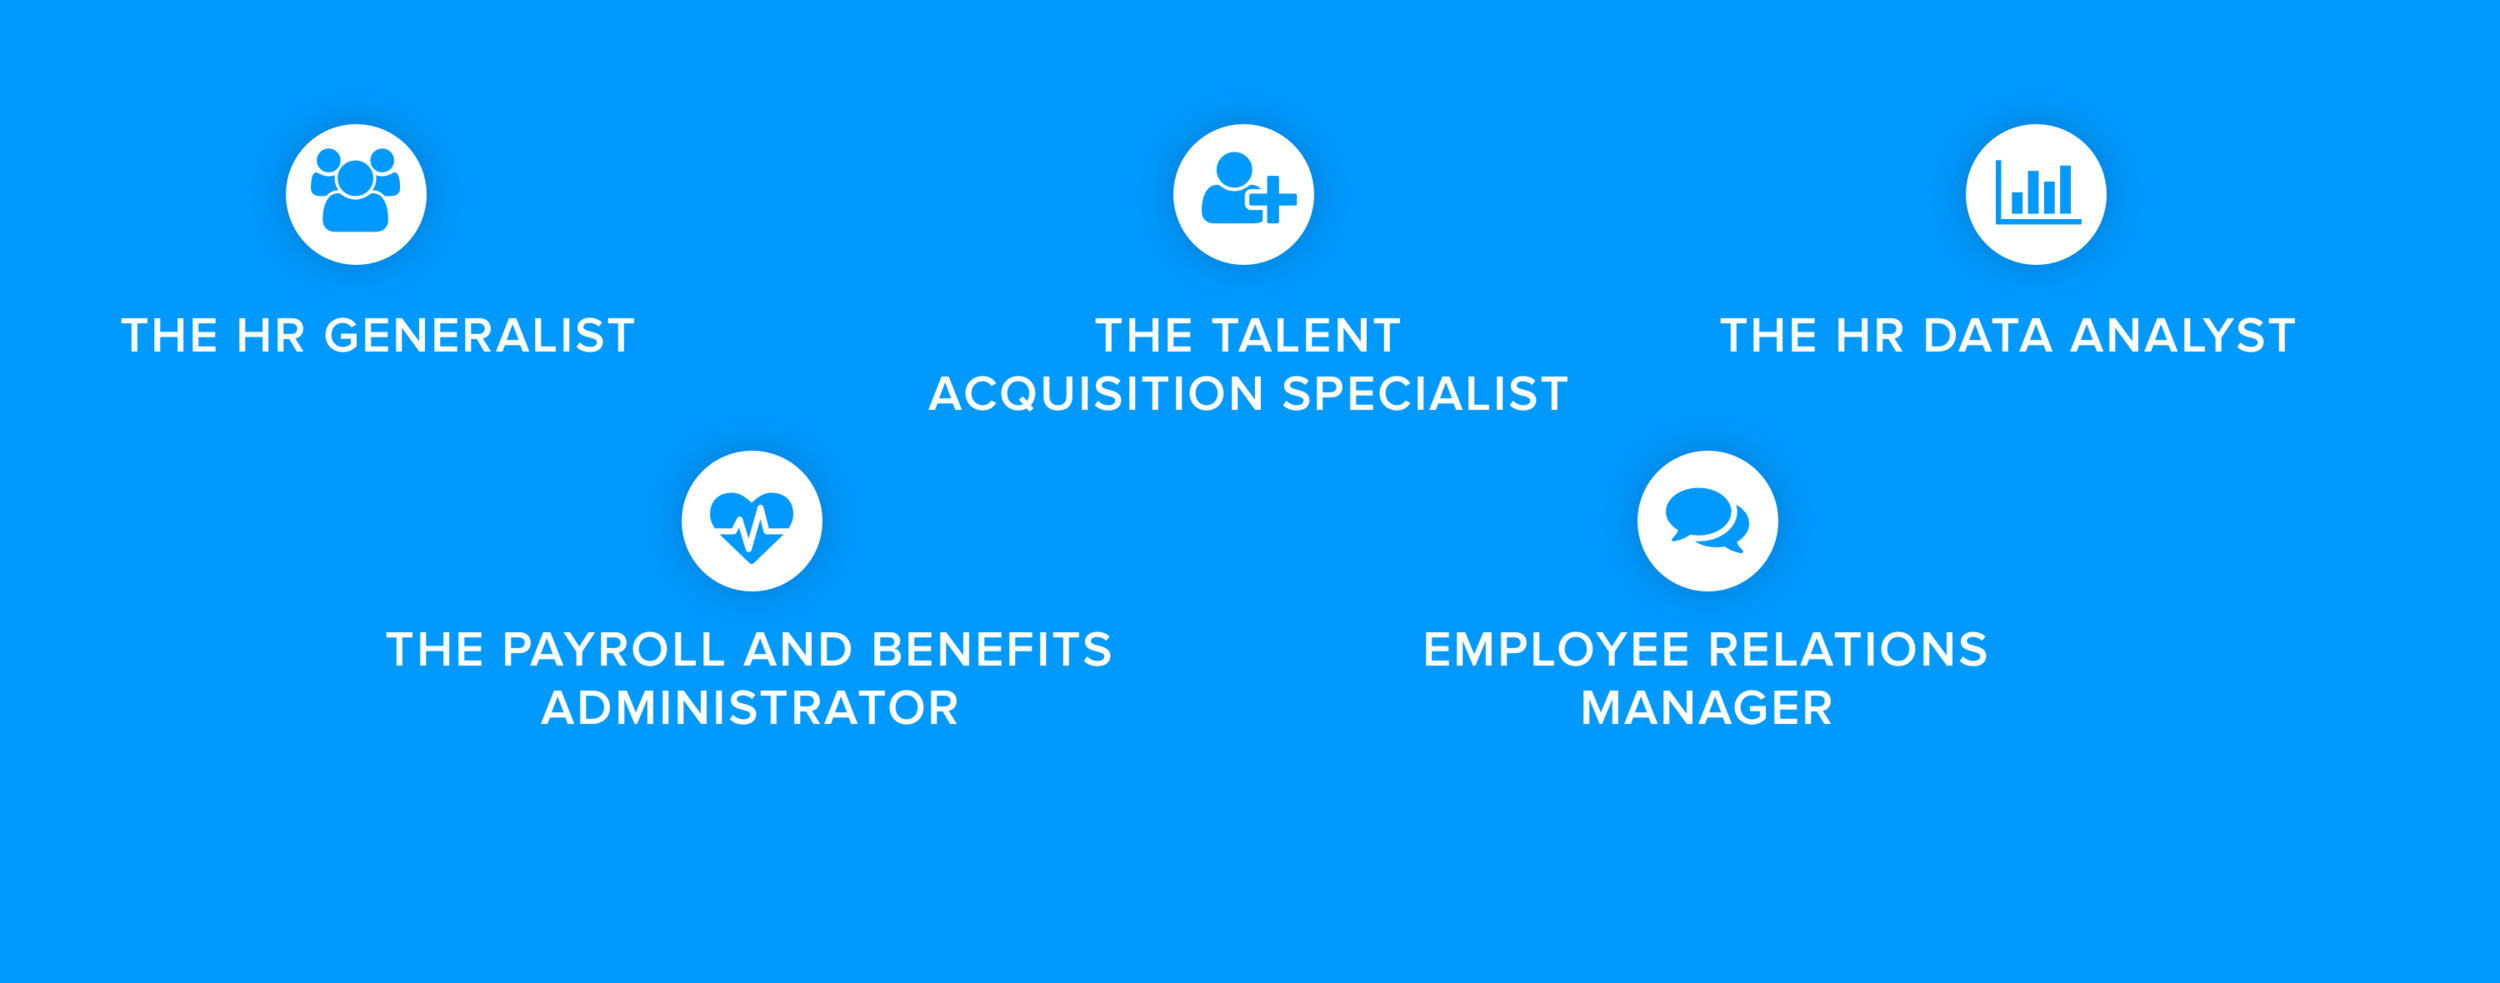 Your Guide To 5 Of The Best HR Career Paths